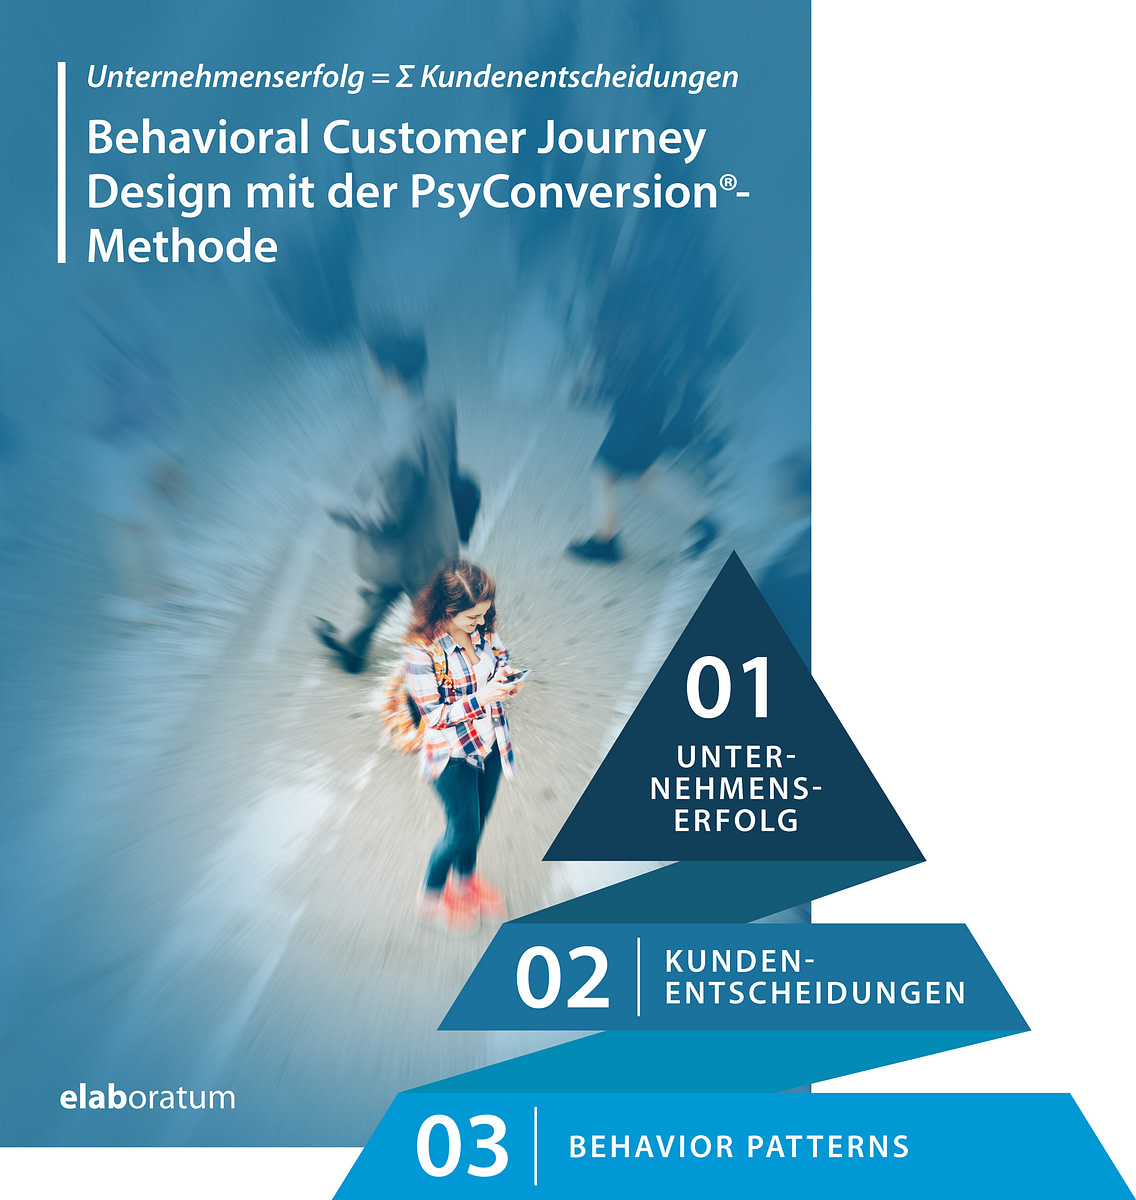 Behavioral Customer Journey Design mit der PsyConversion®-Methode